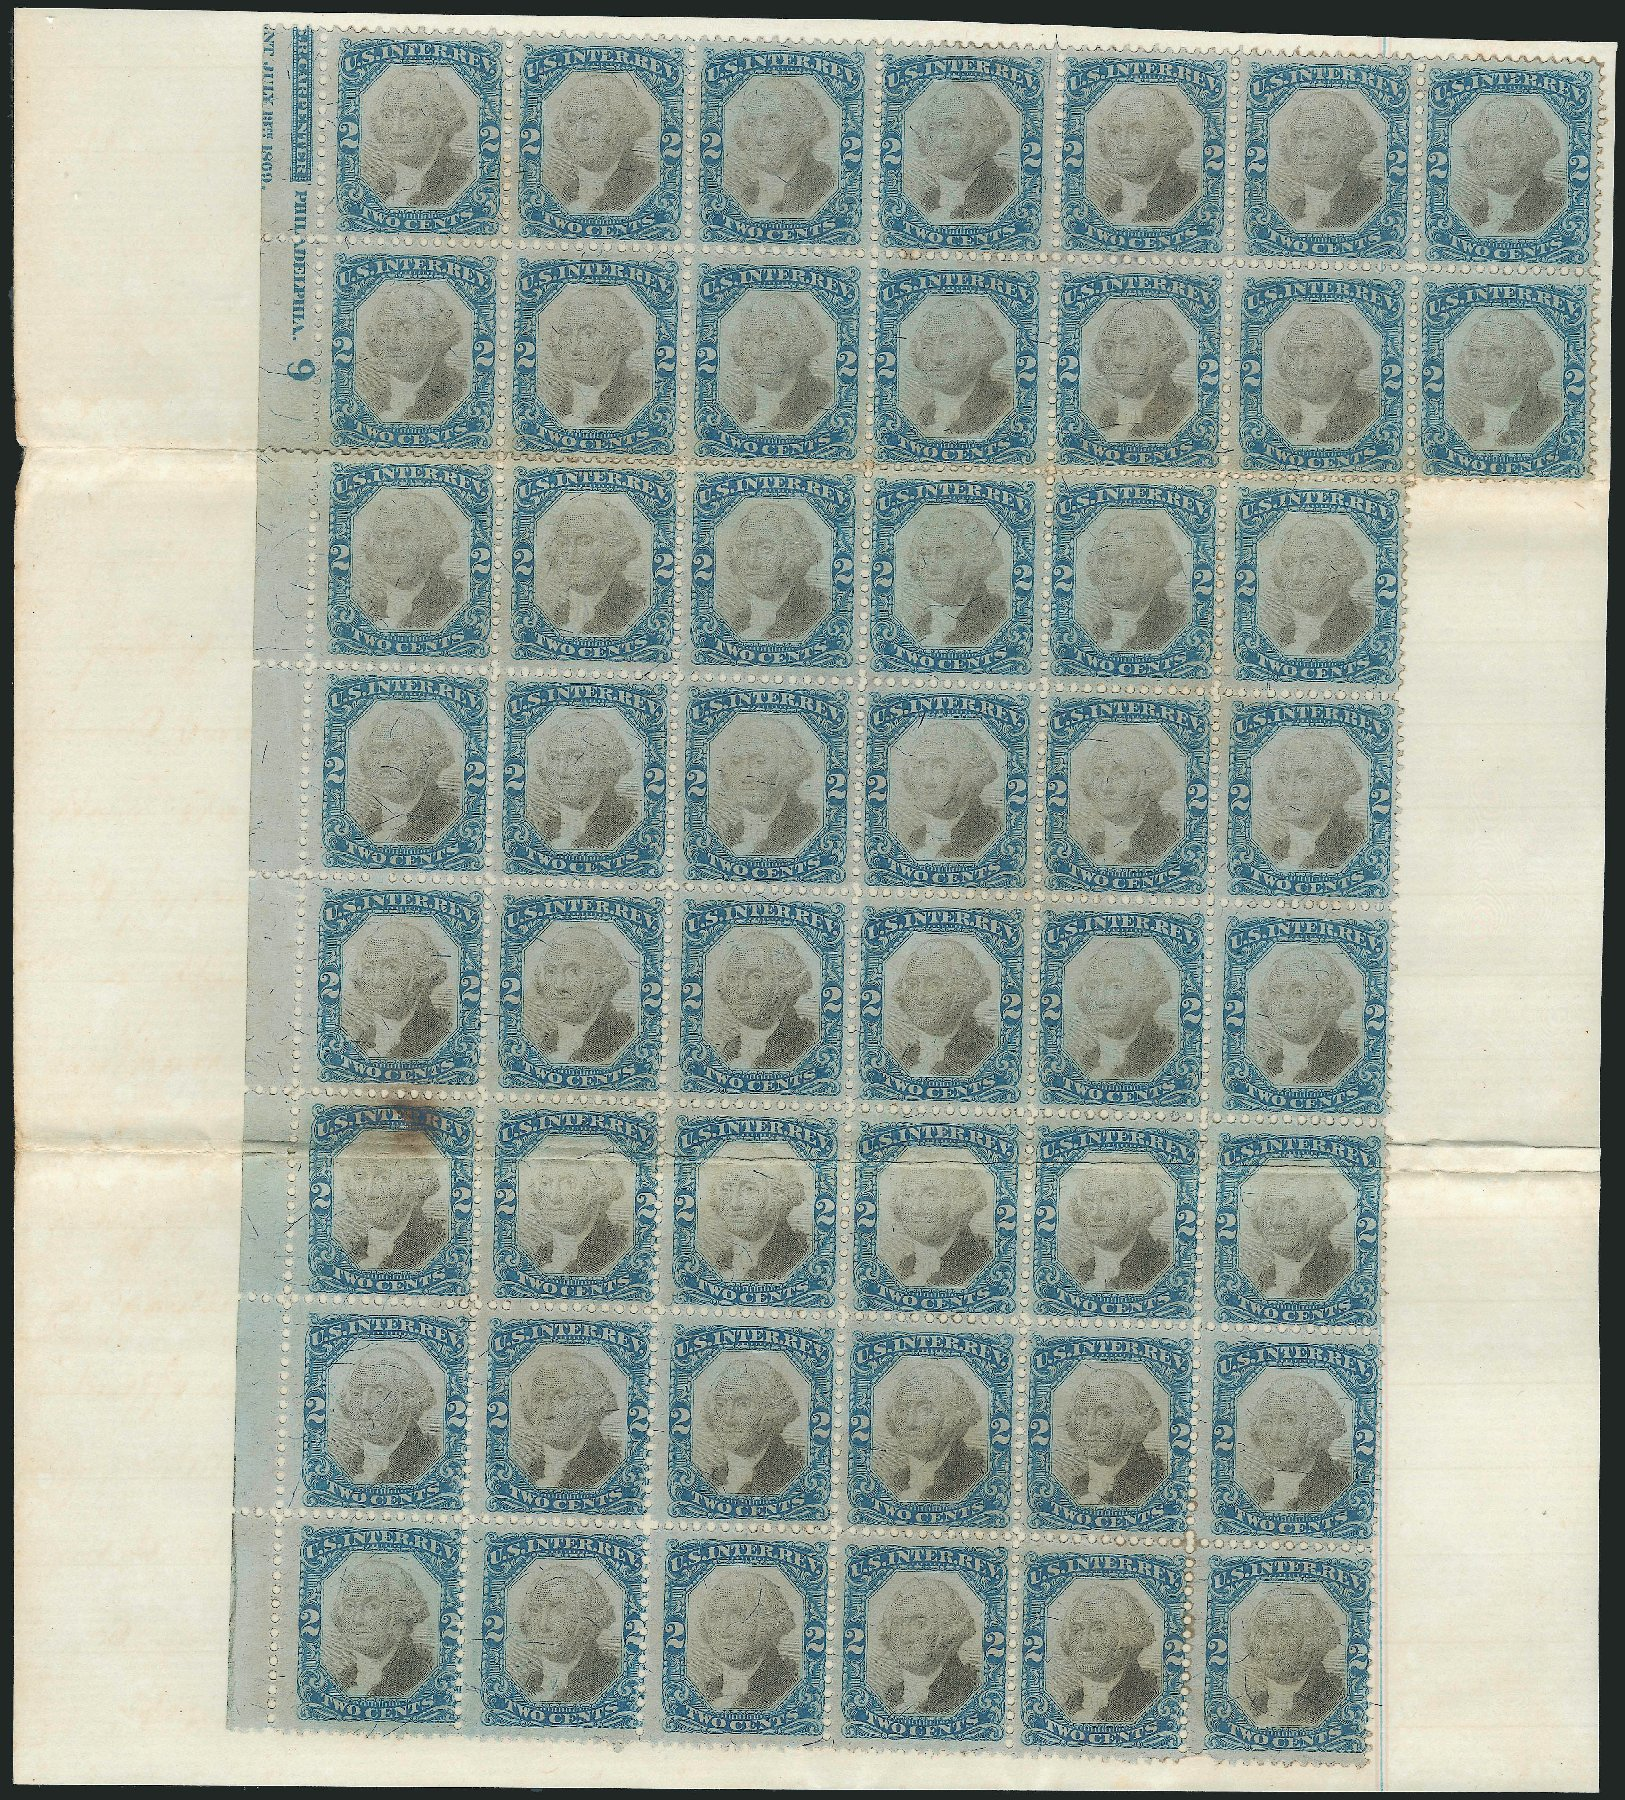 US Stamp Price Scott Catalogue R104: 2c 1871 Revenue Documentary . Robert Siegel Auction Galleries, Dec 2014, Sale 1089, Lot 491